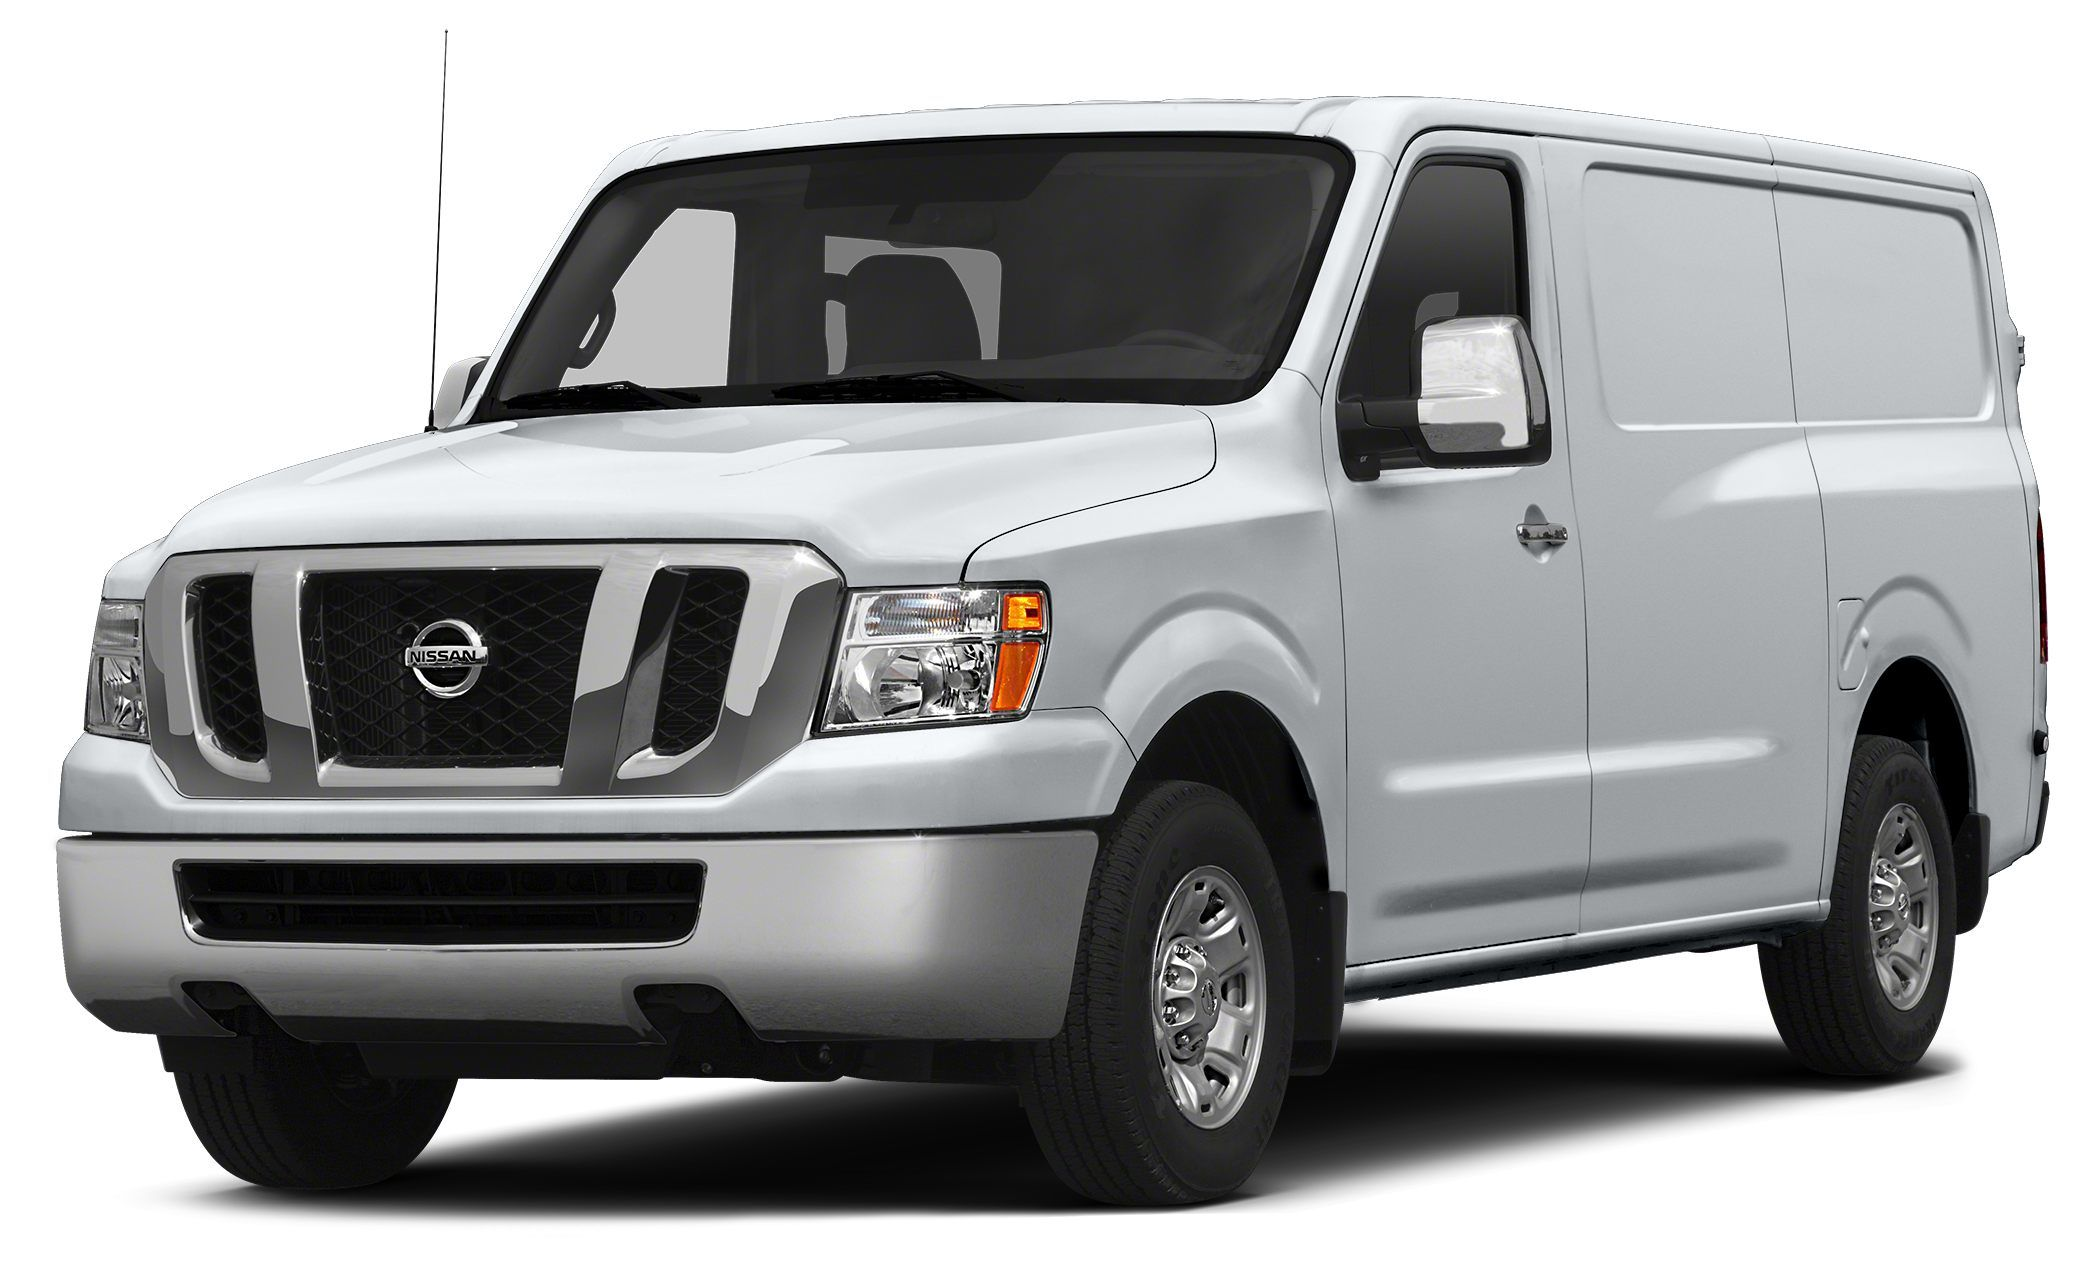 Nissan Work Van >> 2016 Cargo Van Reviews, Mercedes, Ford, Ram, Nissan | Movers, Delivery Service, Haul, Moving ...